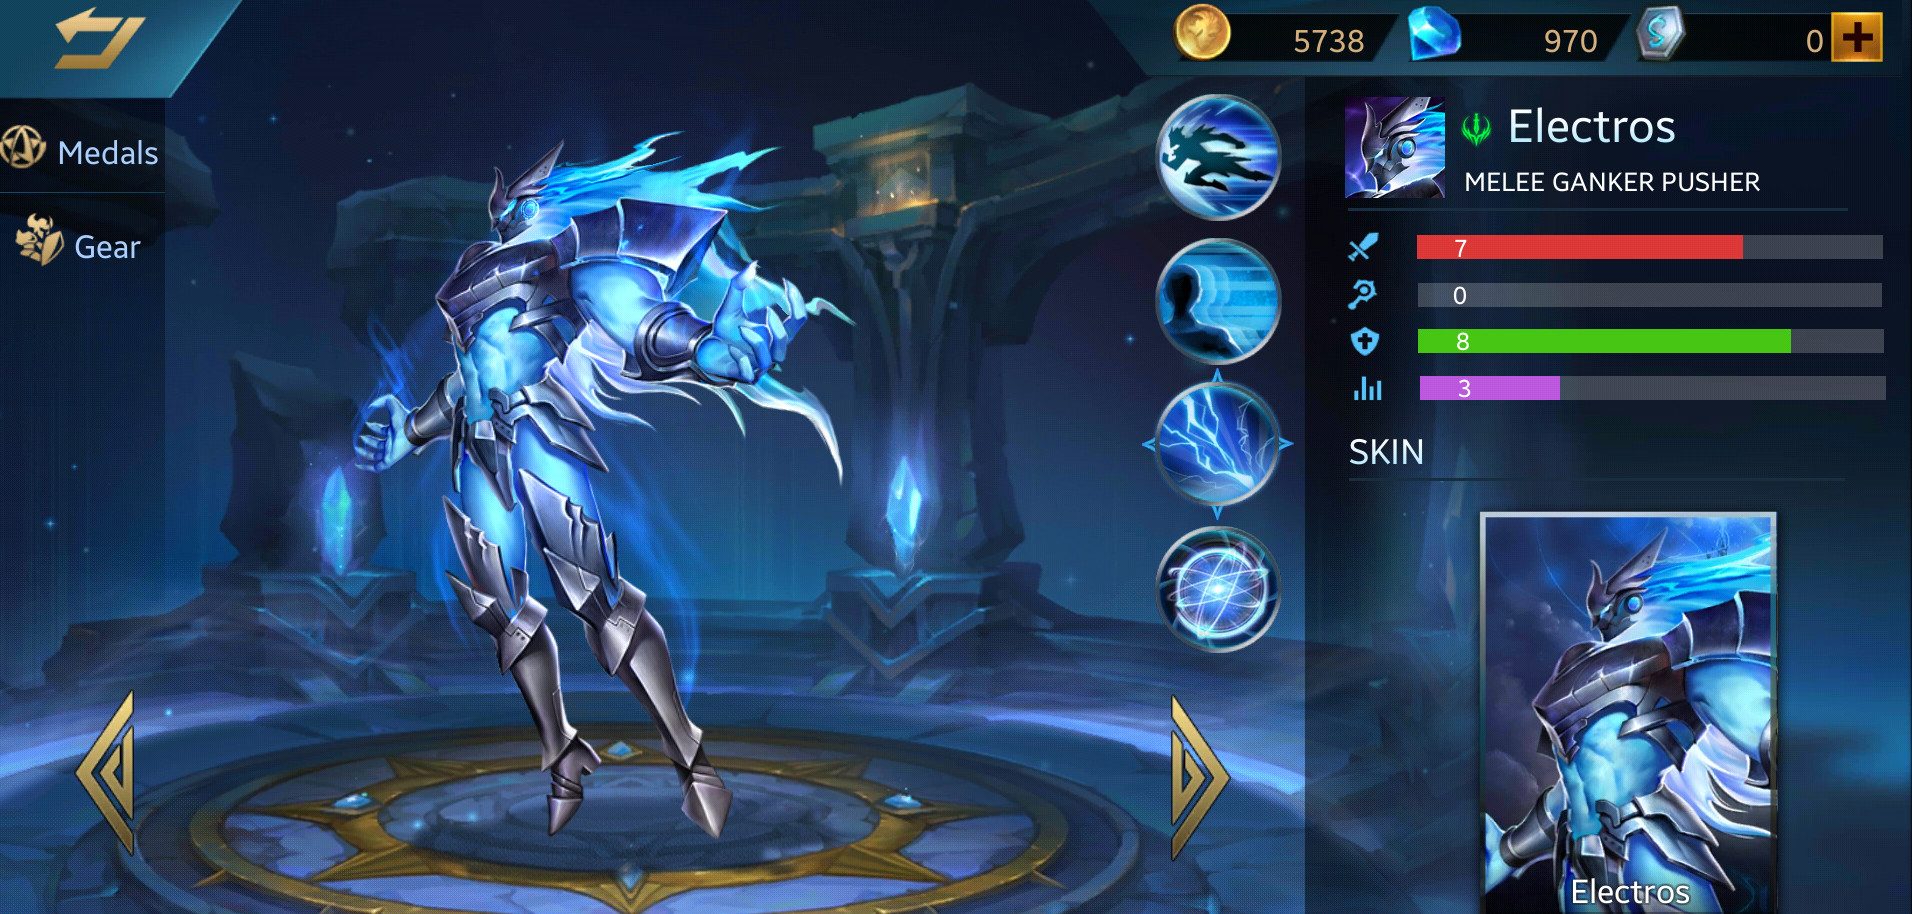 Photo of Heroes Evolved Electros Build Guide